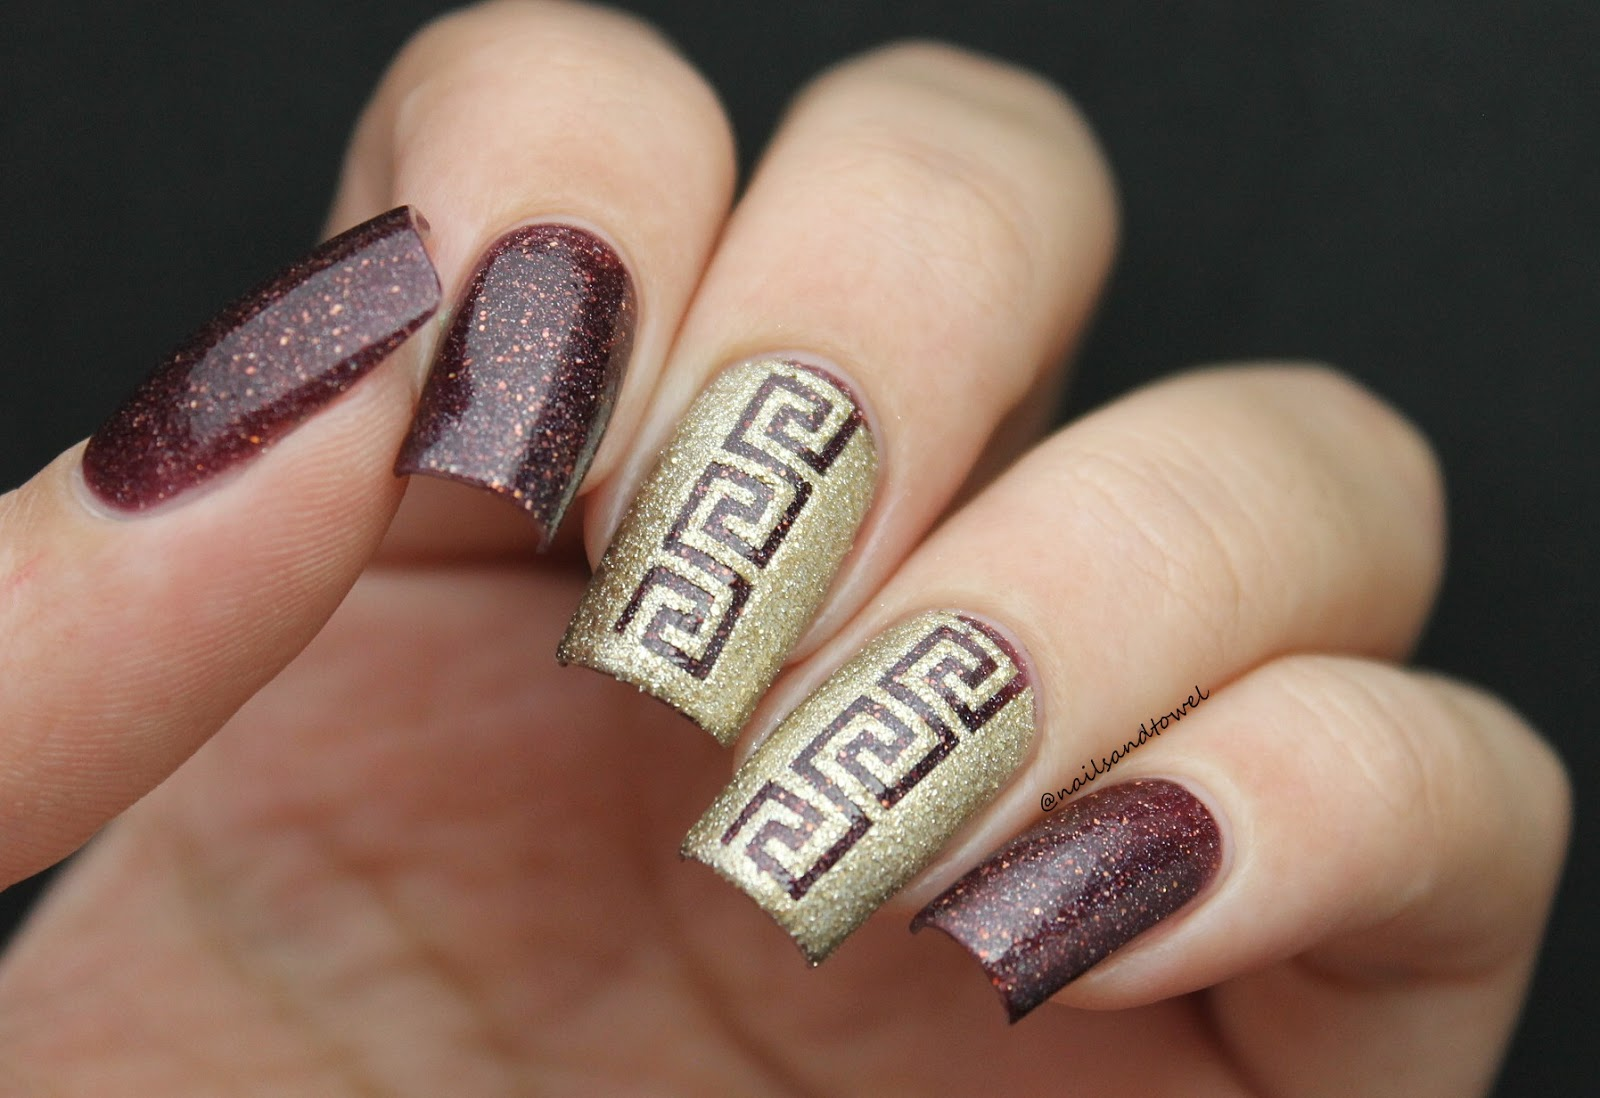 My Nail Art Journal: Greek Style Nails - Ft Whats Up Nails